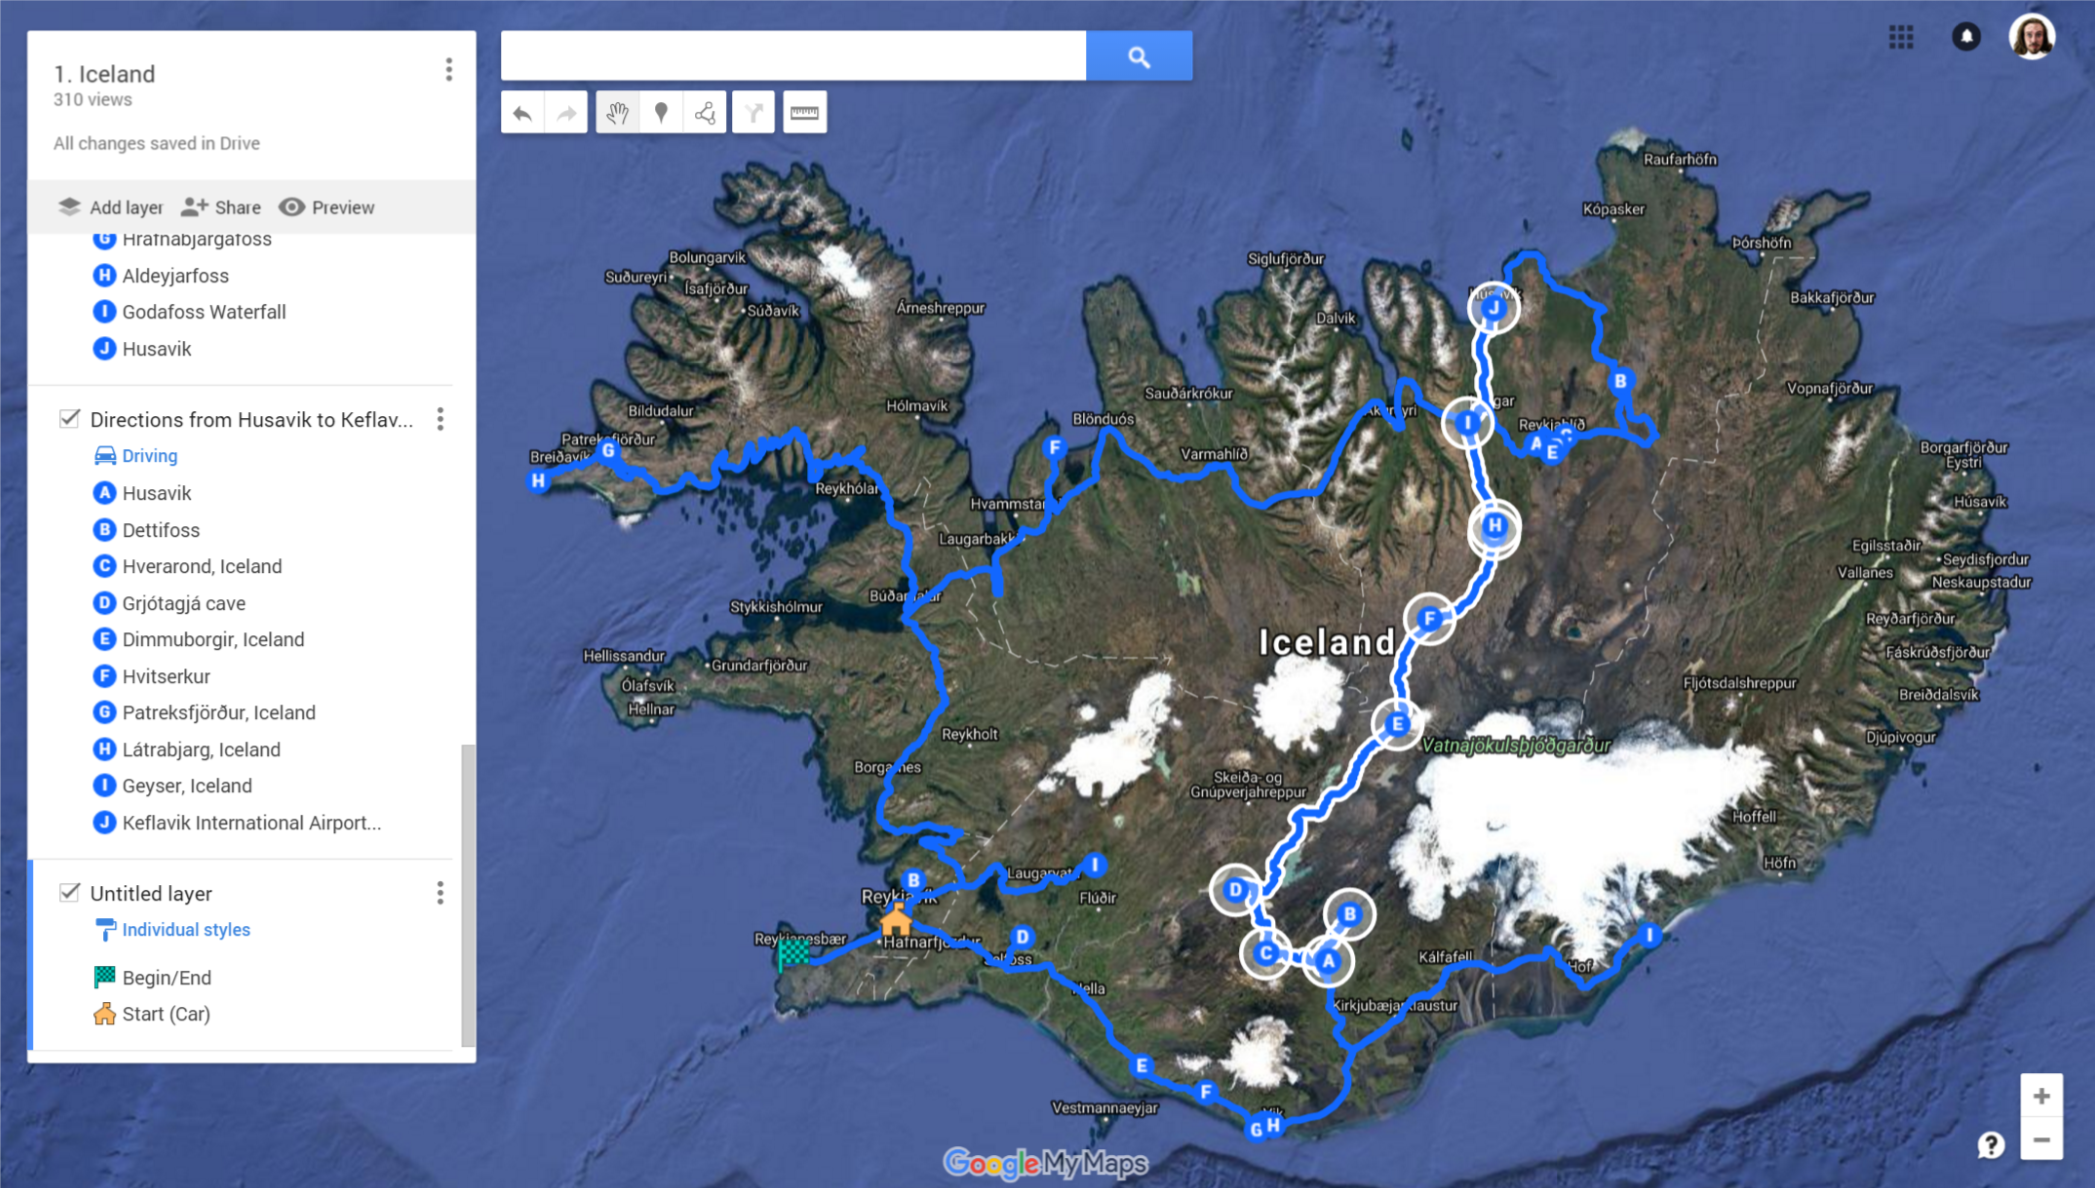 We started in Reykjavik and worked our way south, then backtracked, went north through the highlands and circled back west/south